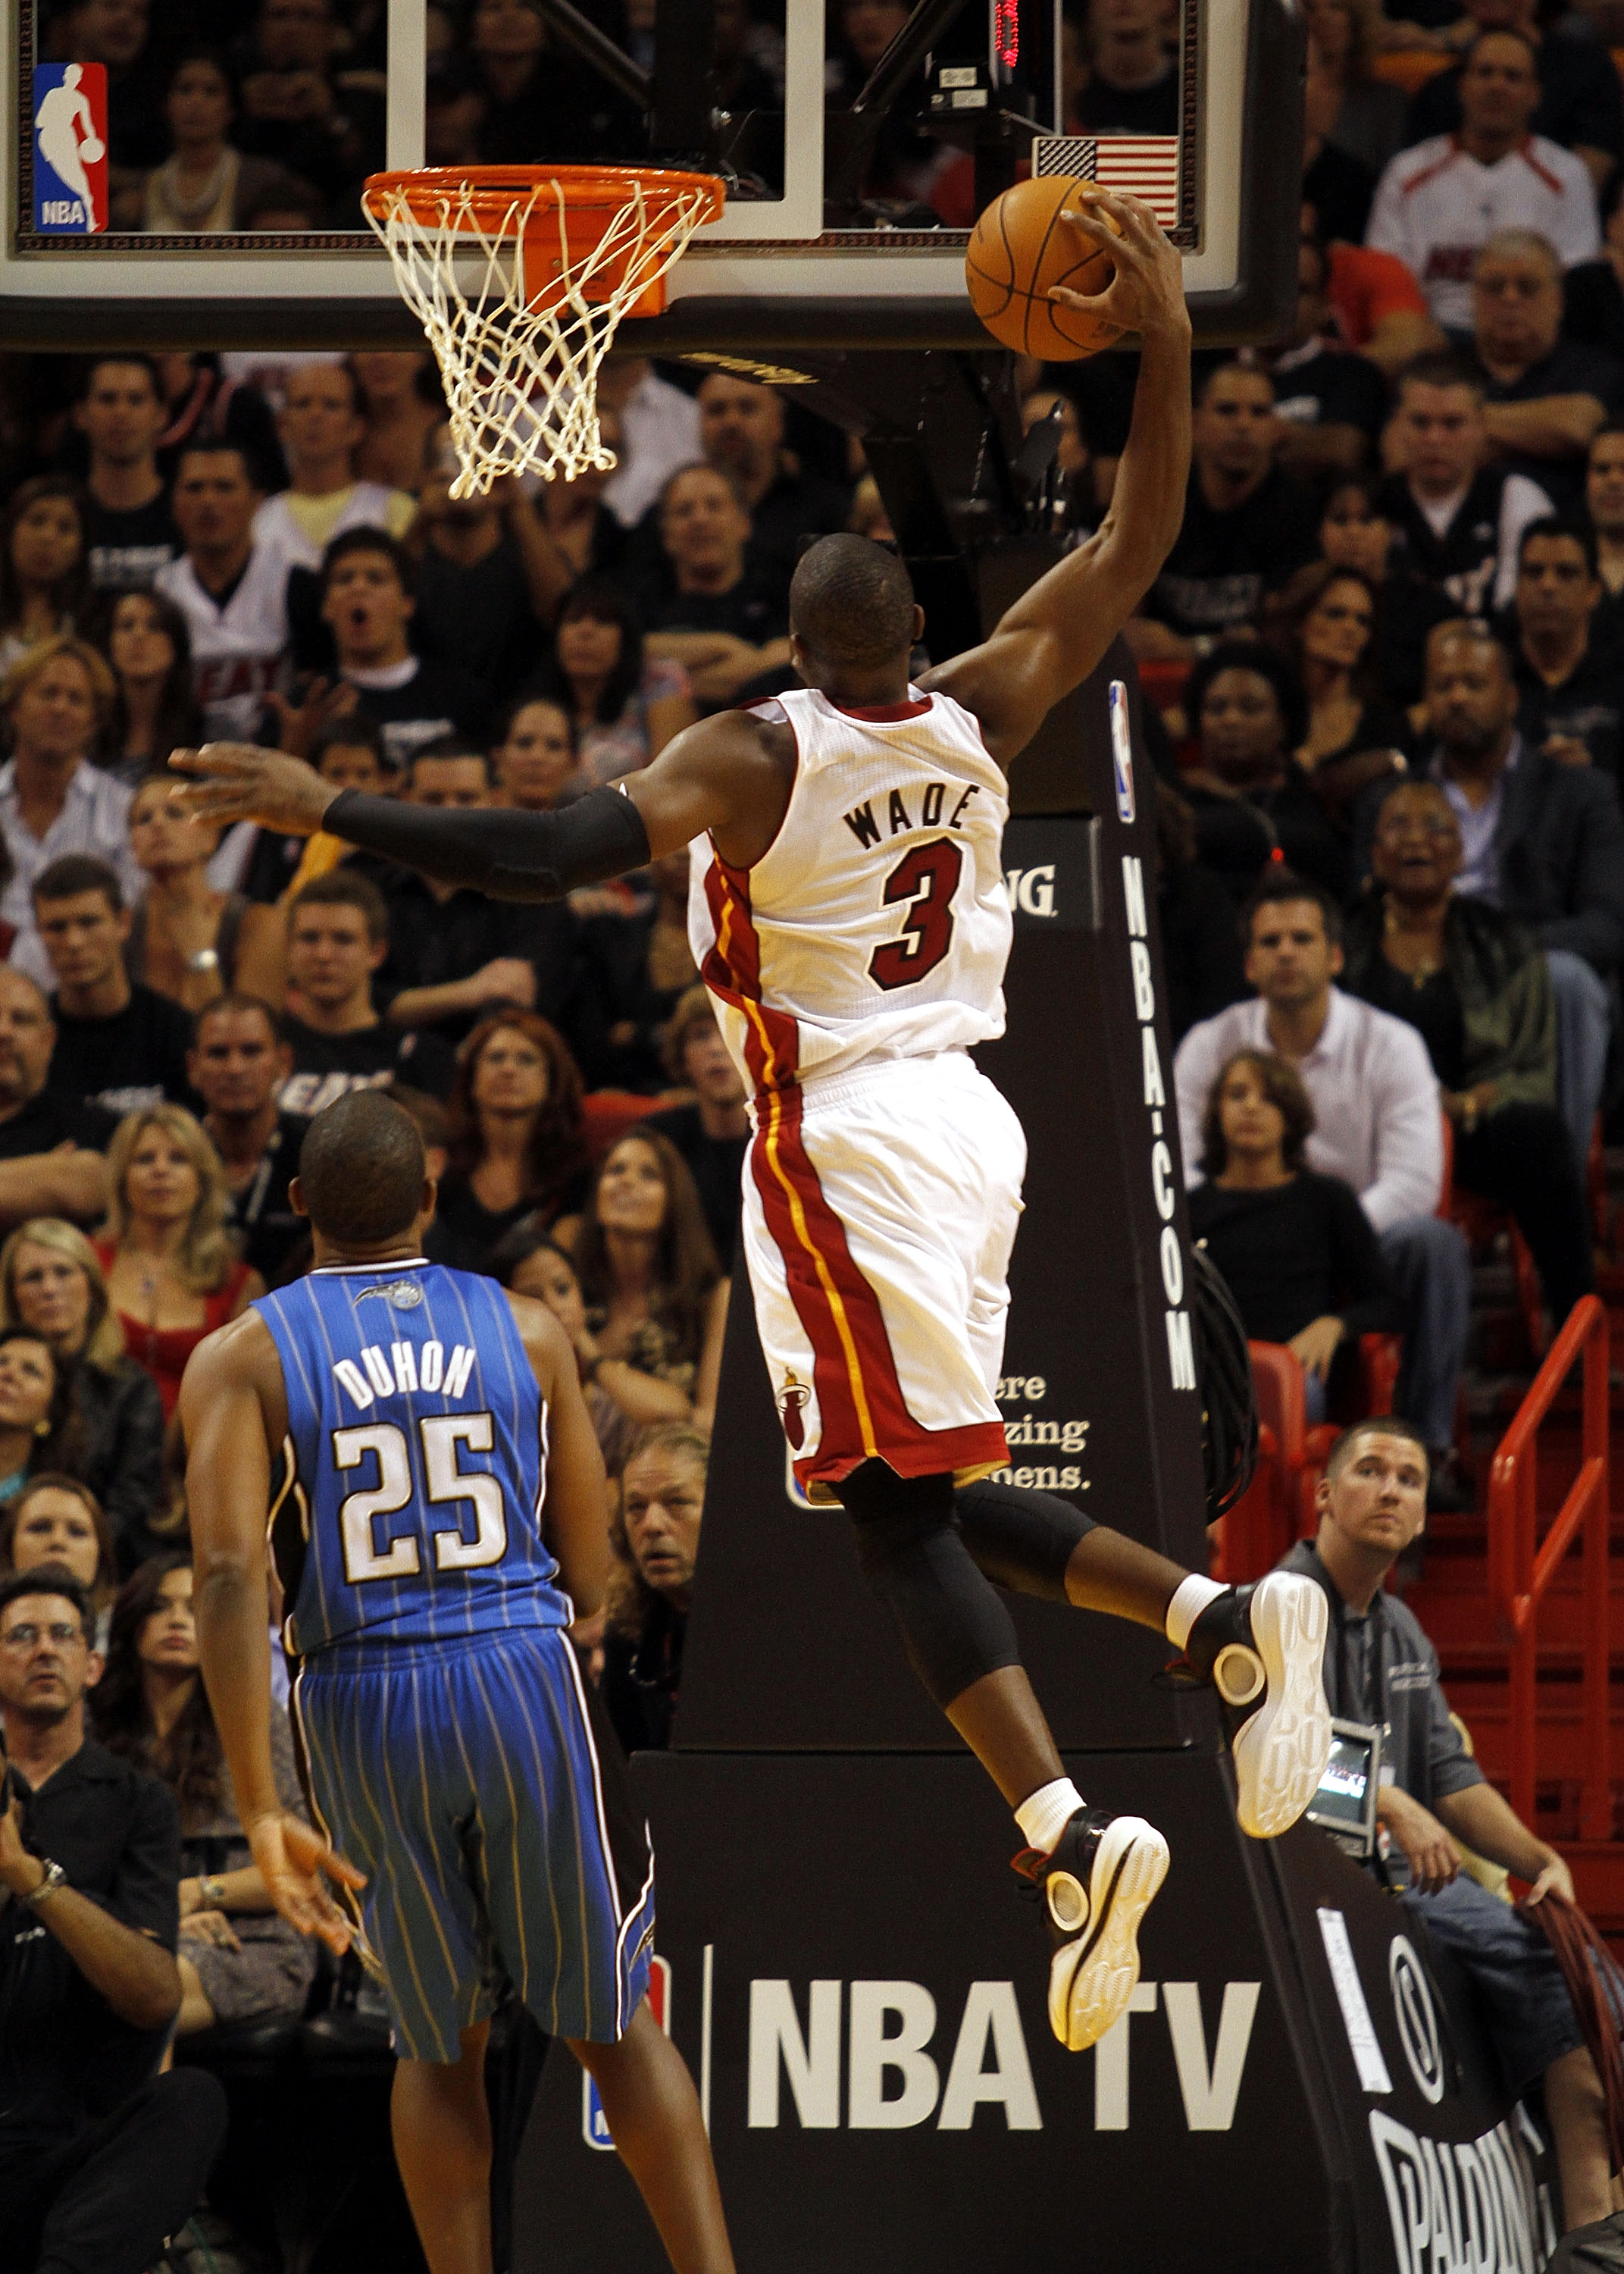 MIAMI - OCTOBER 29:  Guard Dwyane Wade #3 of  the Miami Heat dunks  against the Orlando Magic at American Airlines Arena on October 29, 2010 in Miami, Florida.  NOTE TO USER: User expressly acknowledges and agrees that, by downloading and or using this ph